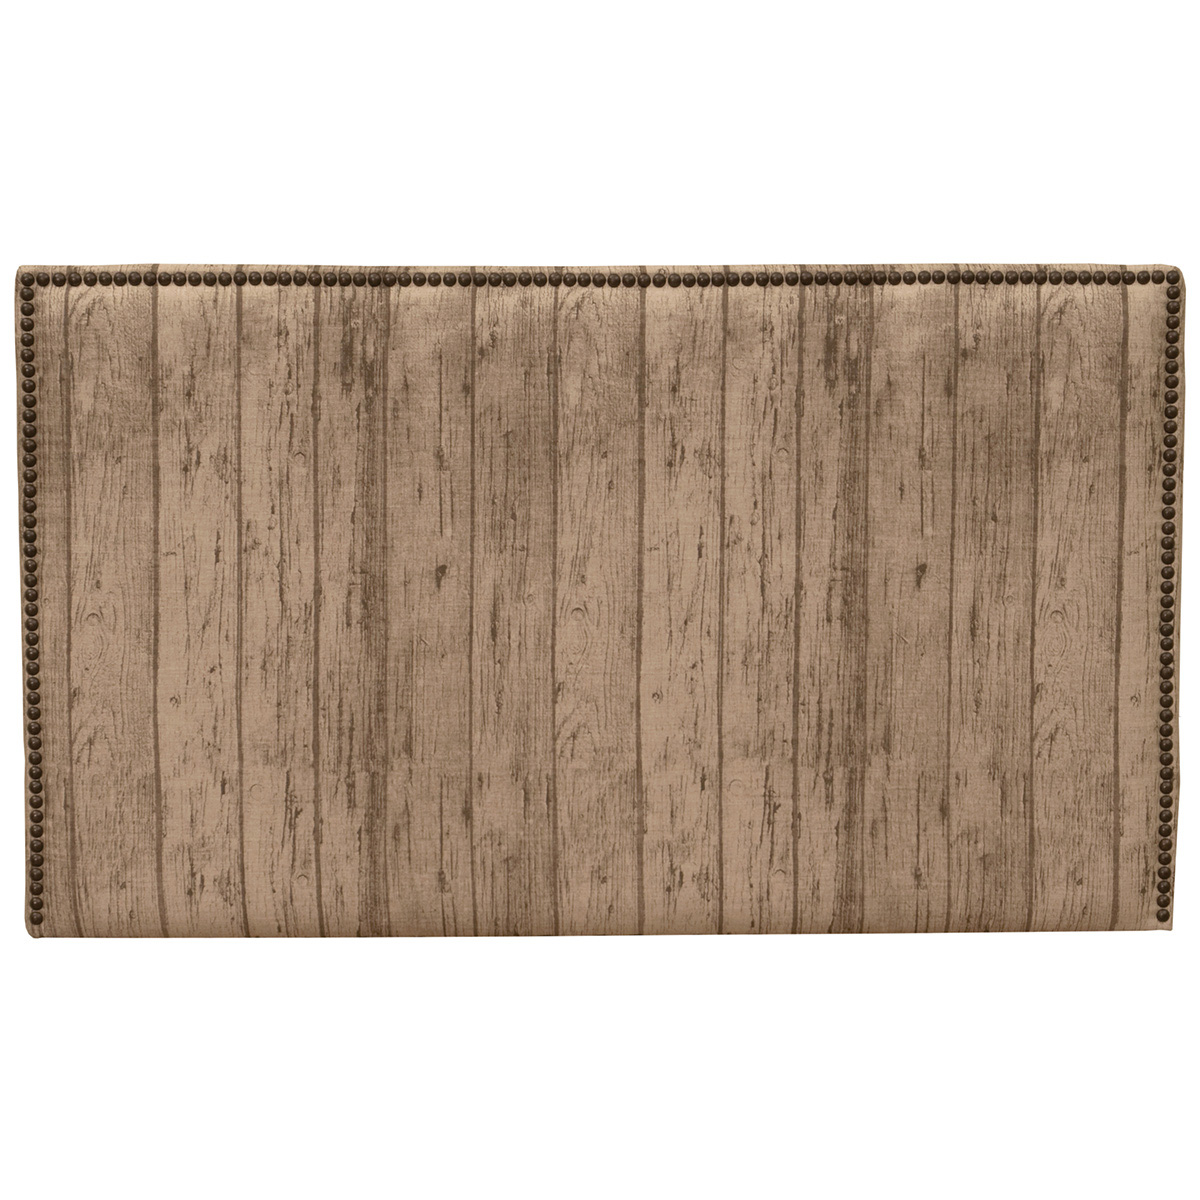 Black Forest Decor Highland wood plank fabric headboard -...